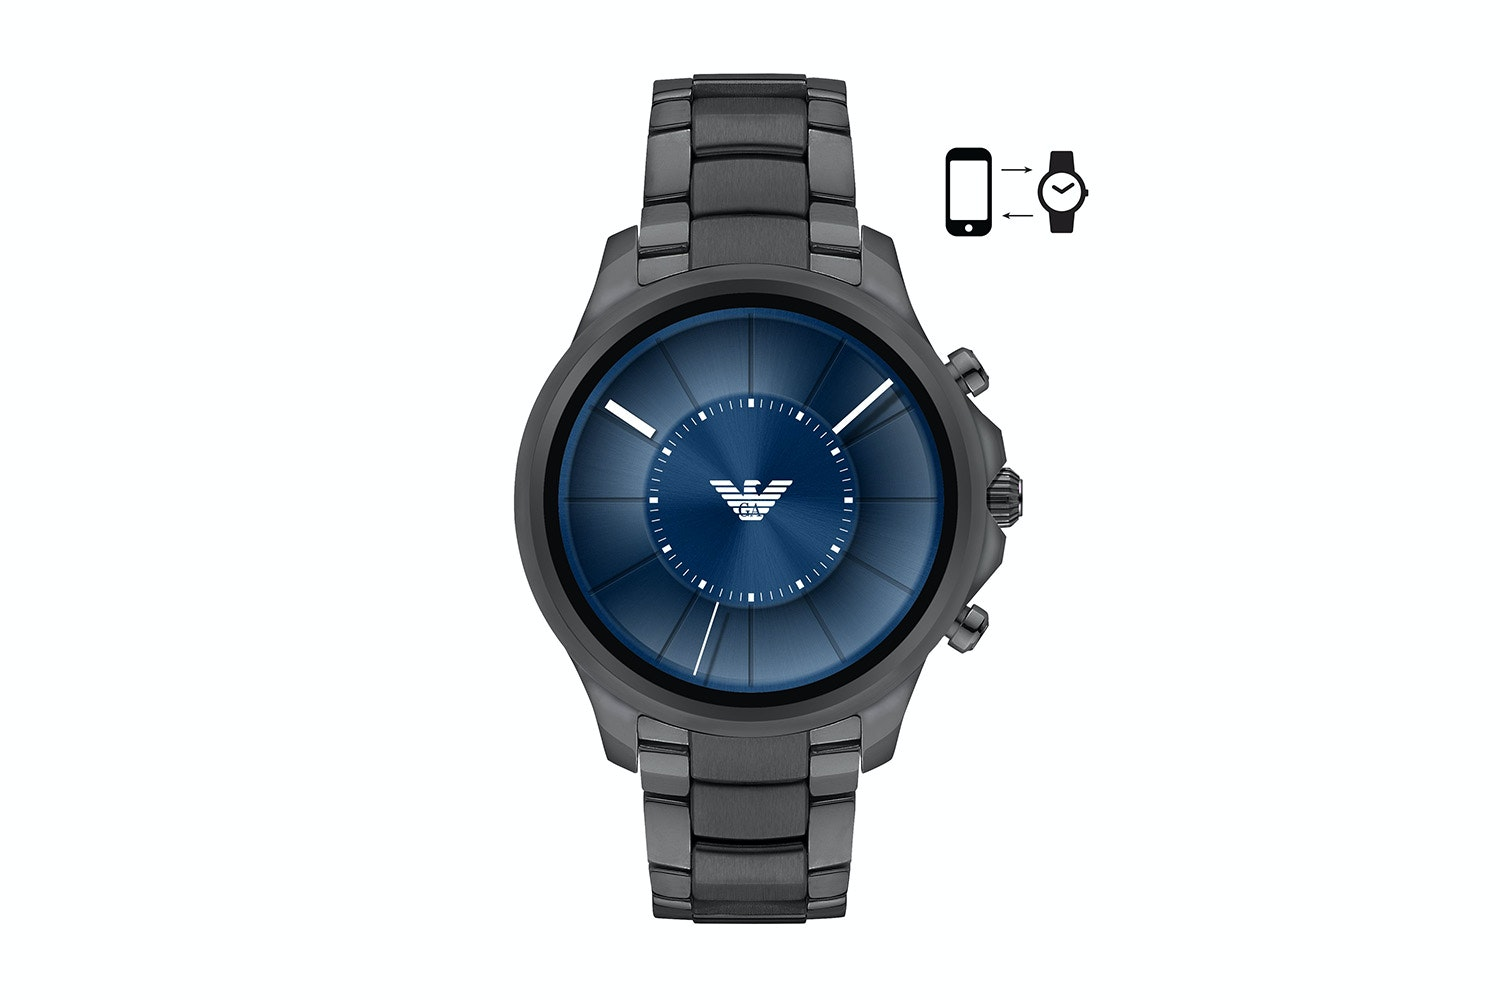 Emporio Armani Men's Touchscreen Smartwatch ART5005